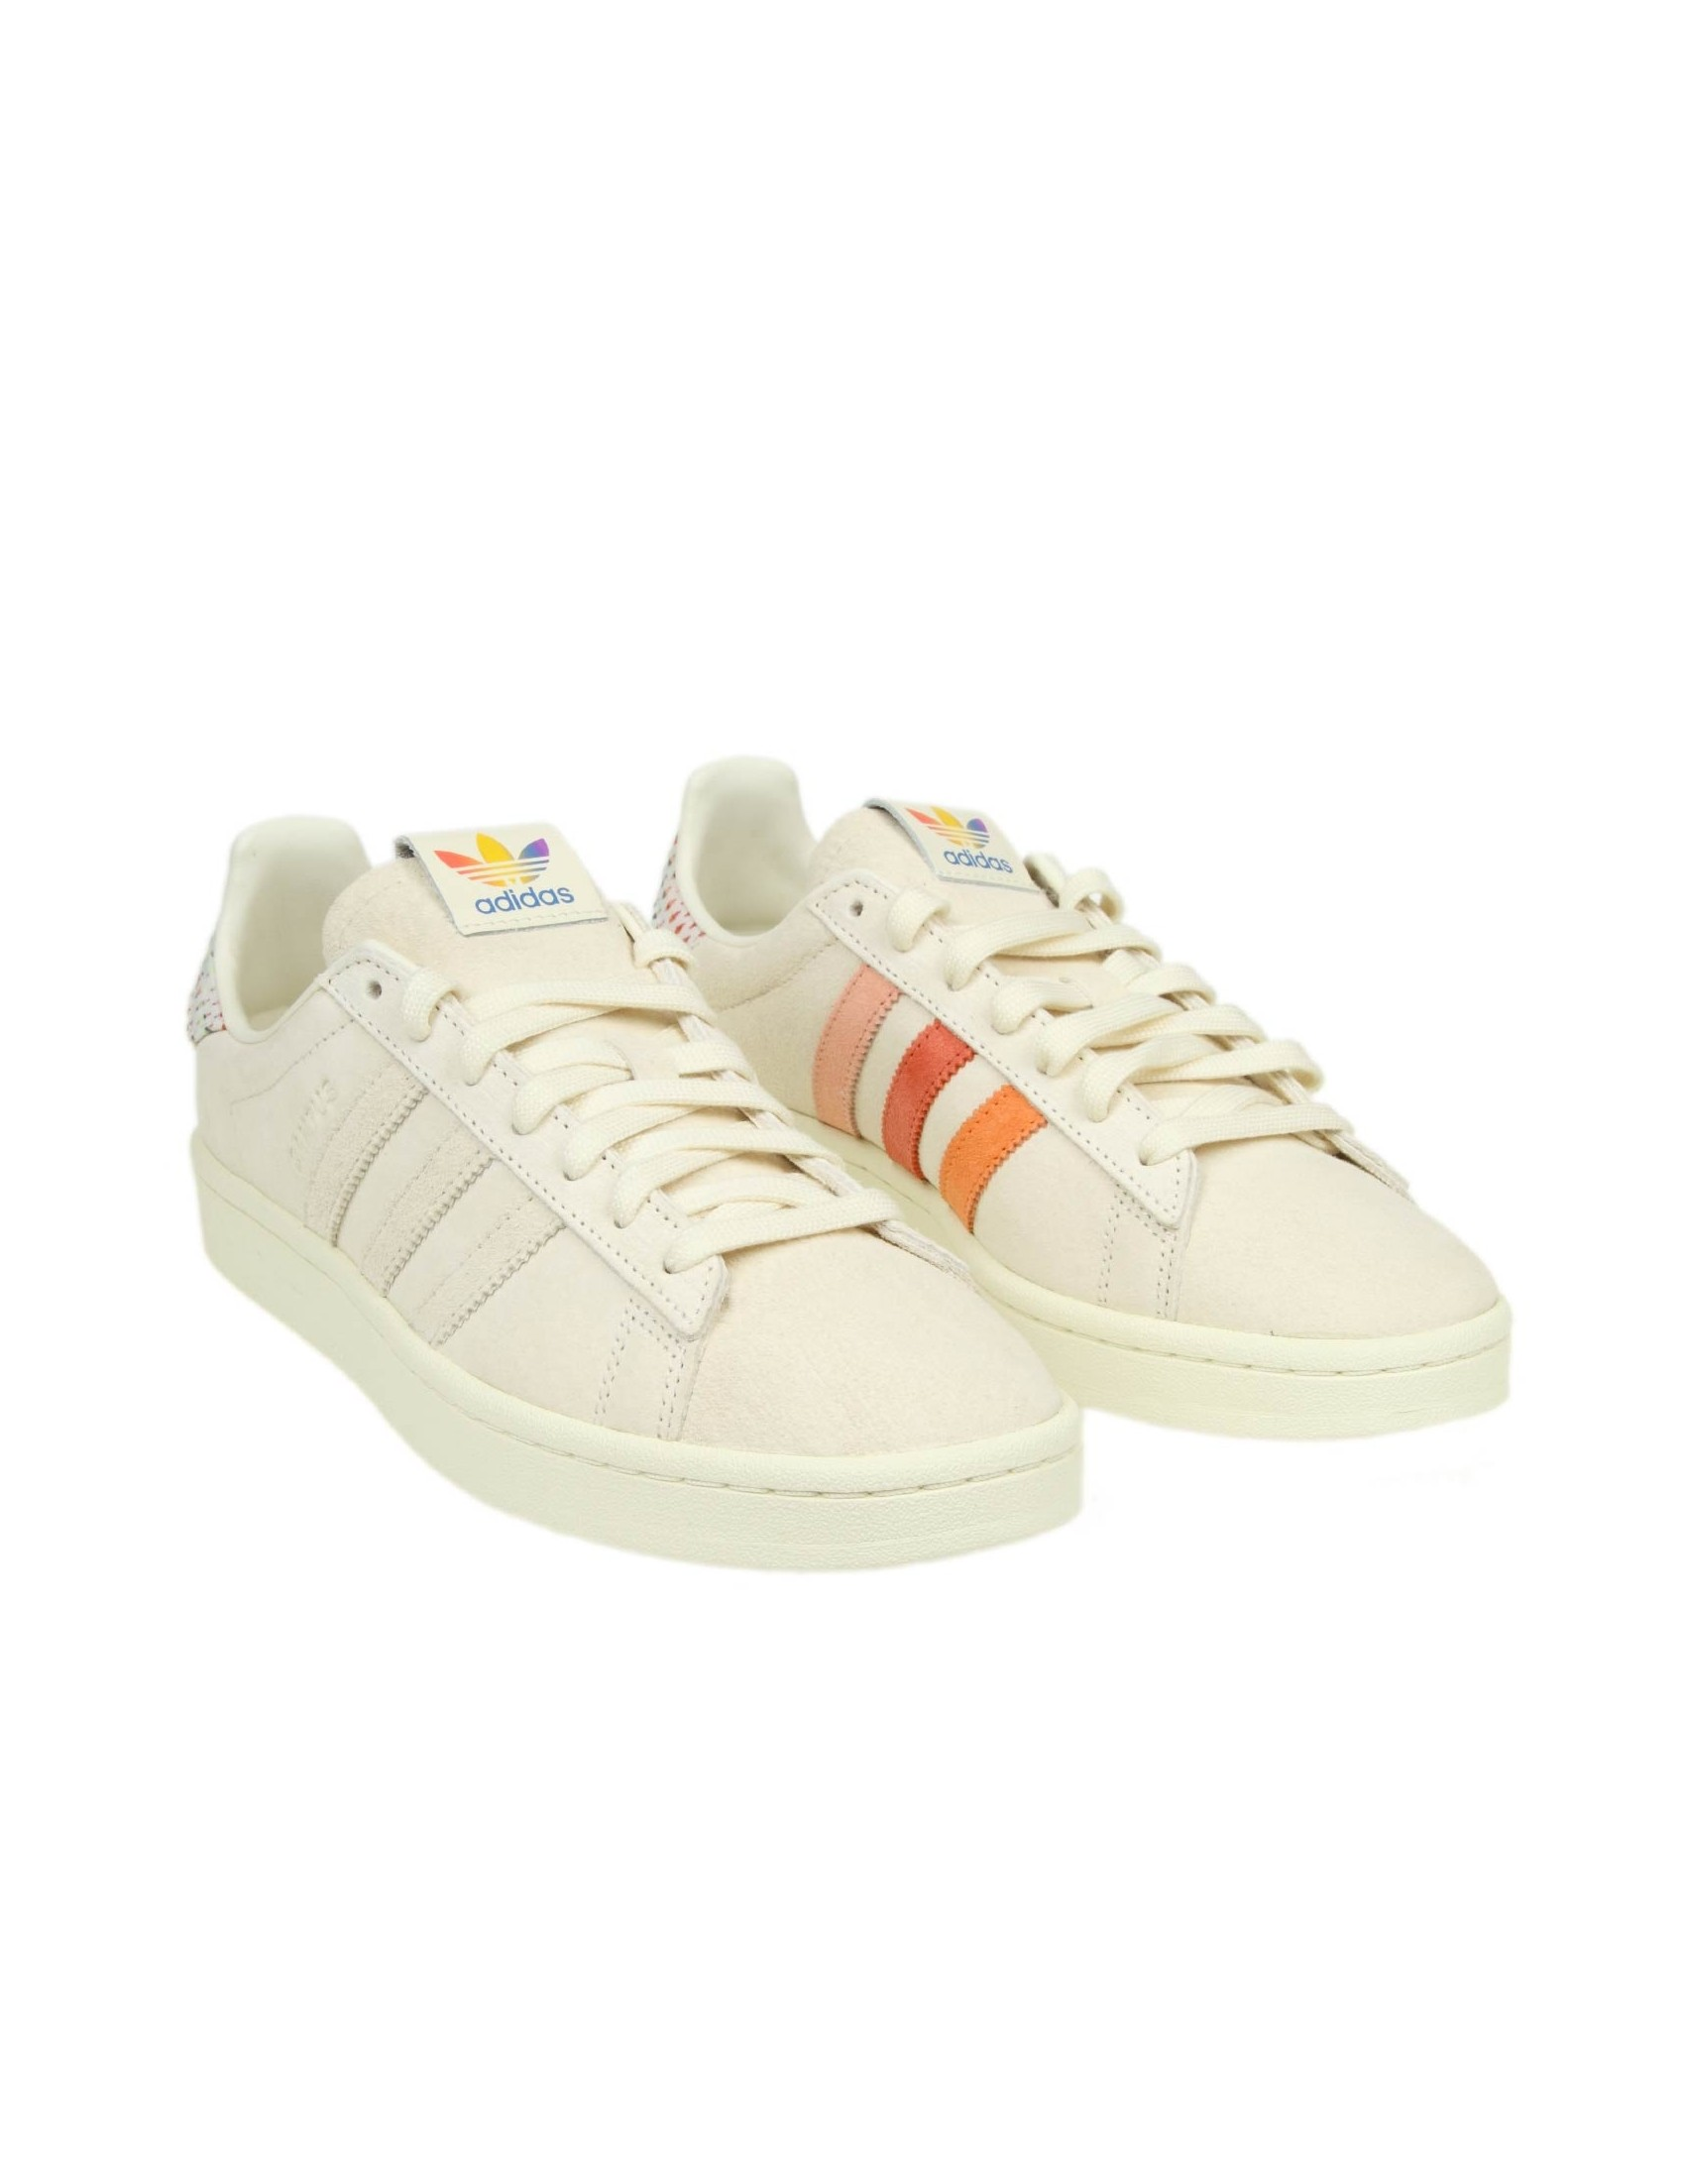 reputable site b079e e7e22 Shoes Campus Pride adidas Beige Men Clothing, Shoes   Accessories